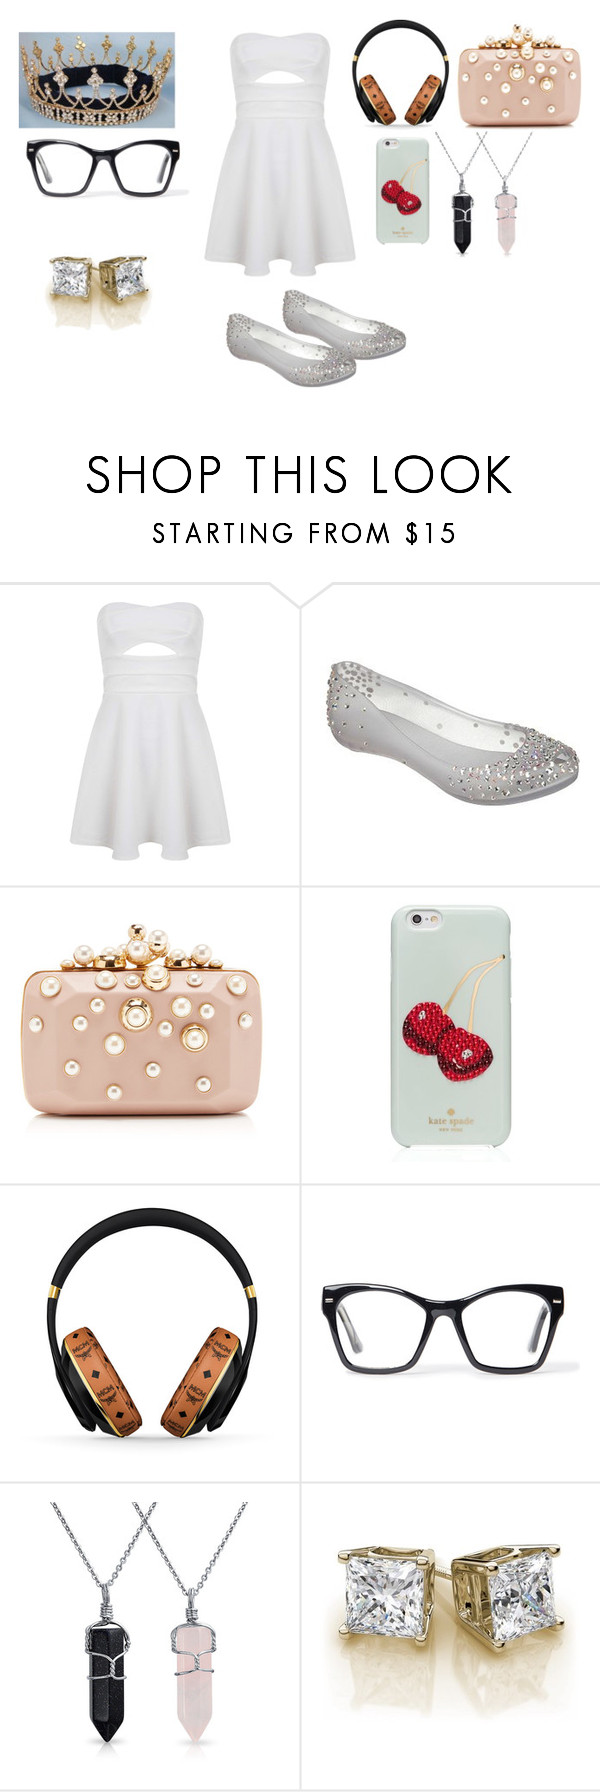 """""""Modern day music princes"""" by wookiemaster1 ❤ liked on Polyvore featuring Miss Selfridge, Melissa, Elie Saab, Kate Spade, MCM, Spitfire, Bling Jewelry and modern"""